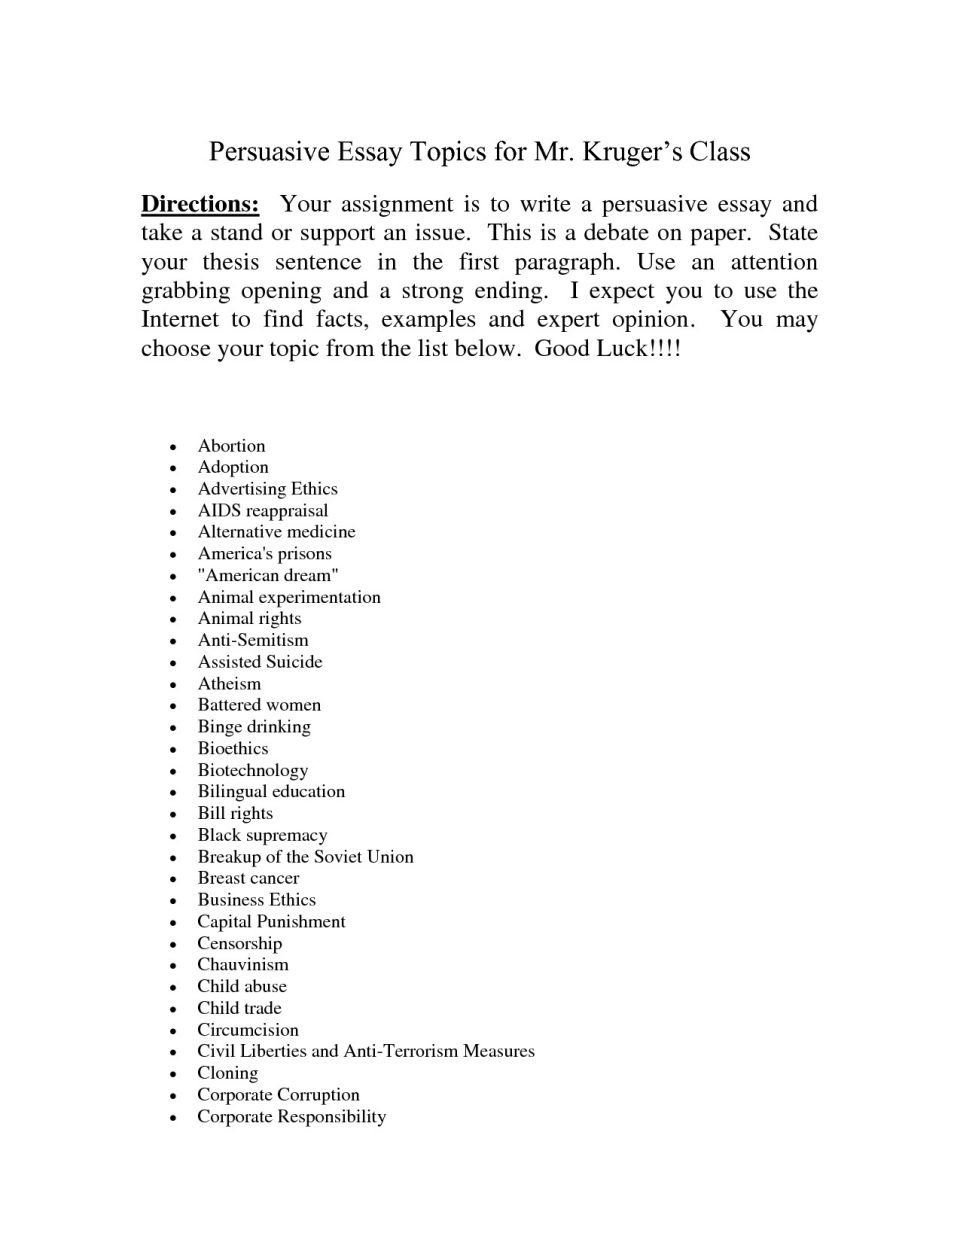 017 Topic For Essay Barca Fontanacountryinn Within Good Persuasive Narrative Topics To Write Abo Easy About Personal Descriptive Research Paper Informative Synthesis College 960x1242 Sensational Interesting A Ideas Reddit In The Philippines Full